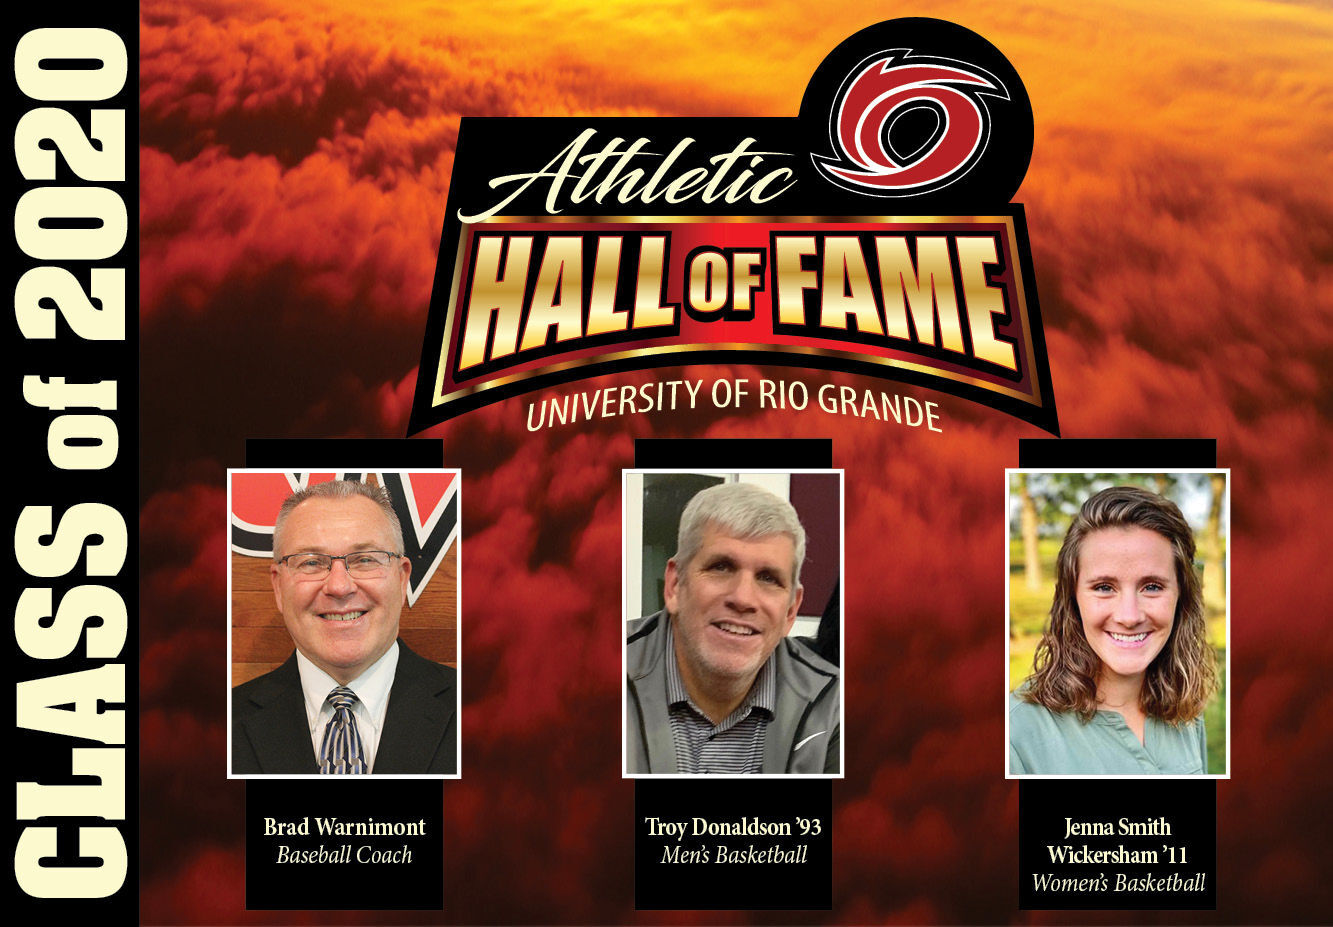 Rio Grande Class of 2020 Athletic Hall of Fame